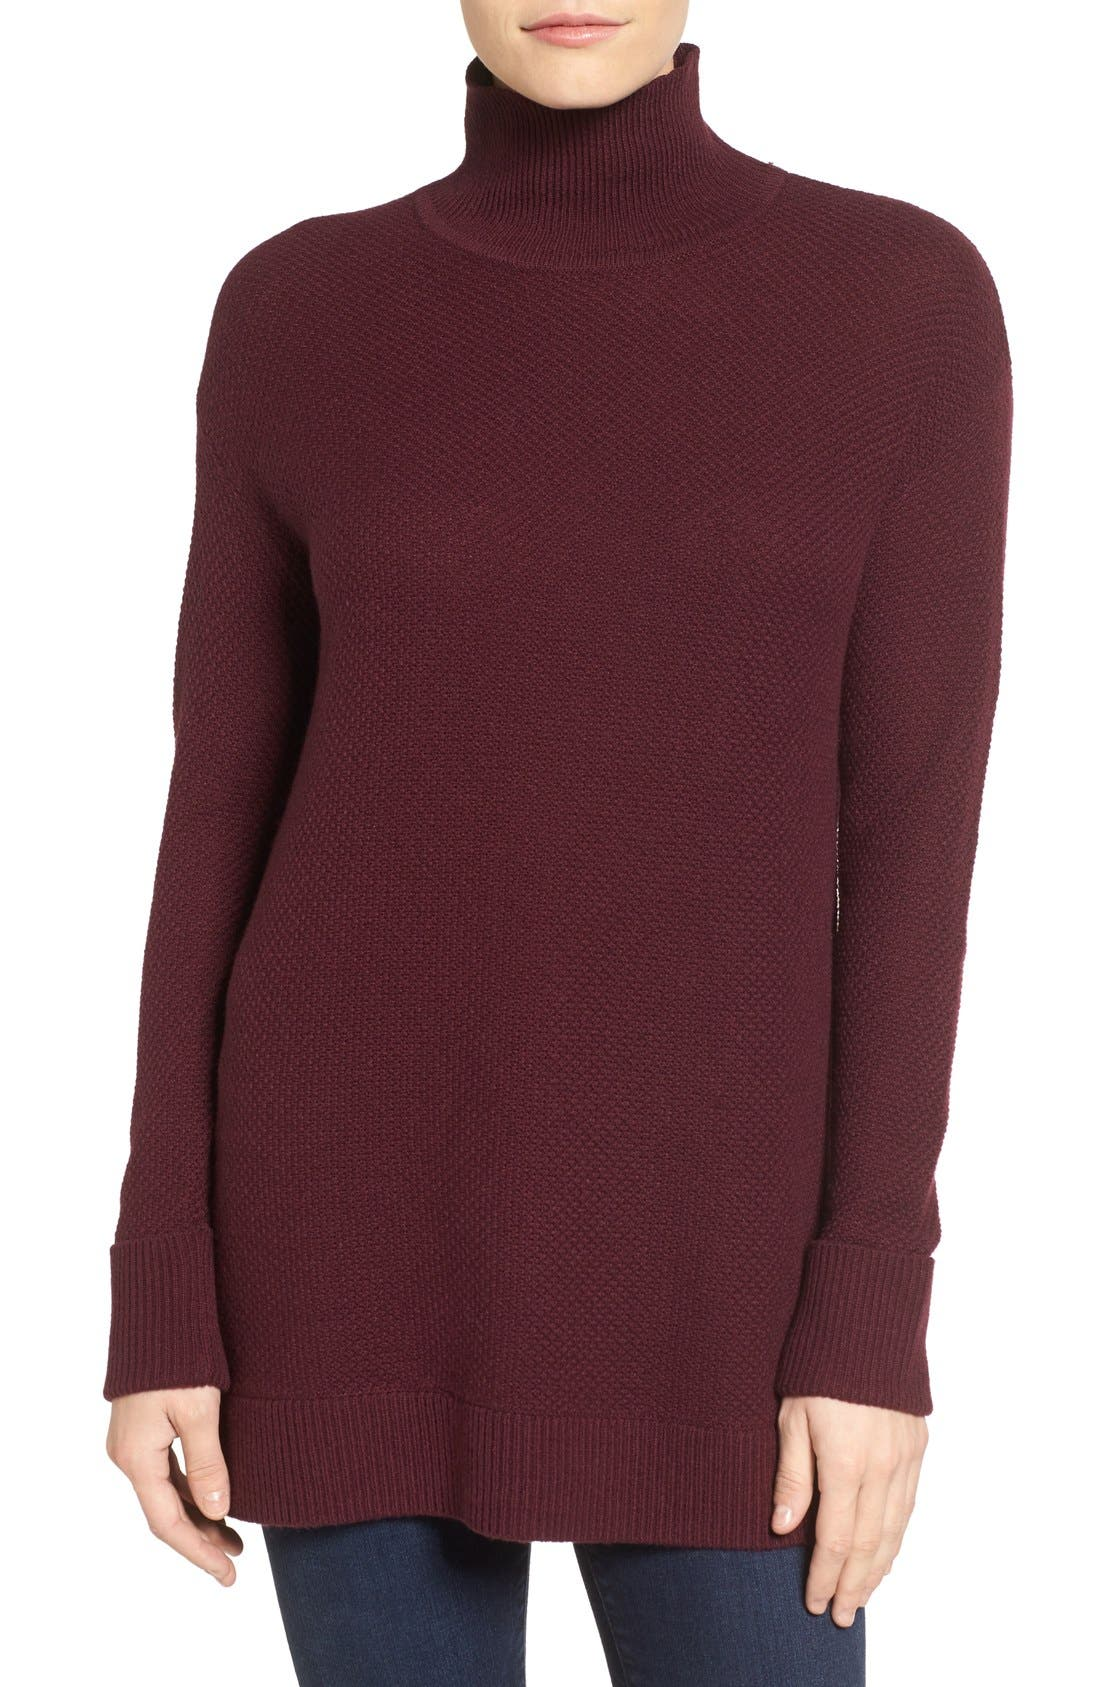 Main Image - Halogen® Mock Turtleneck Sweater (Regular & Petite)